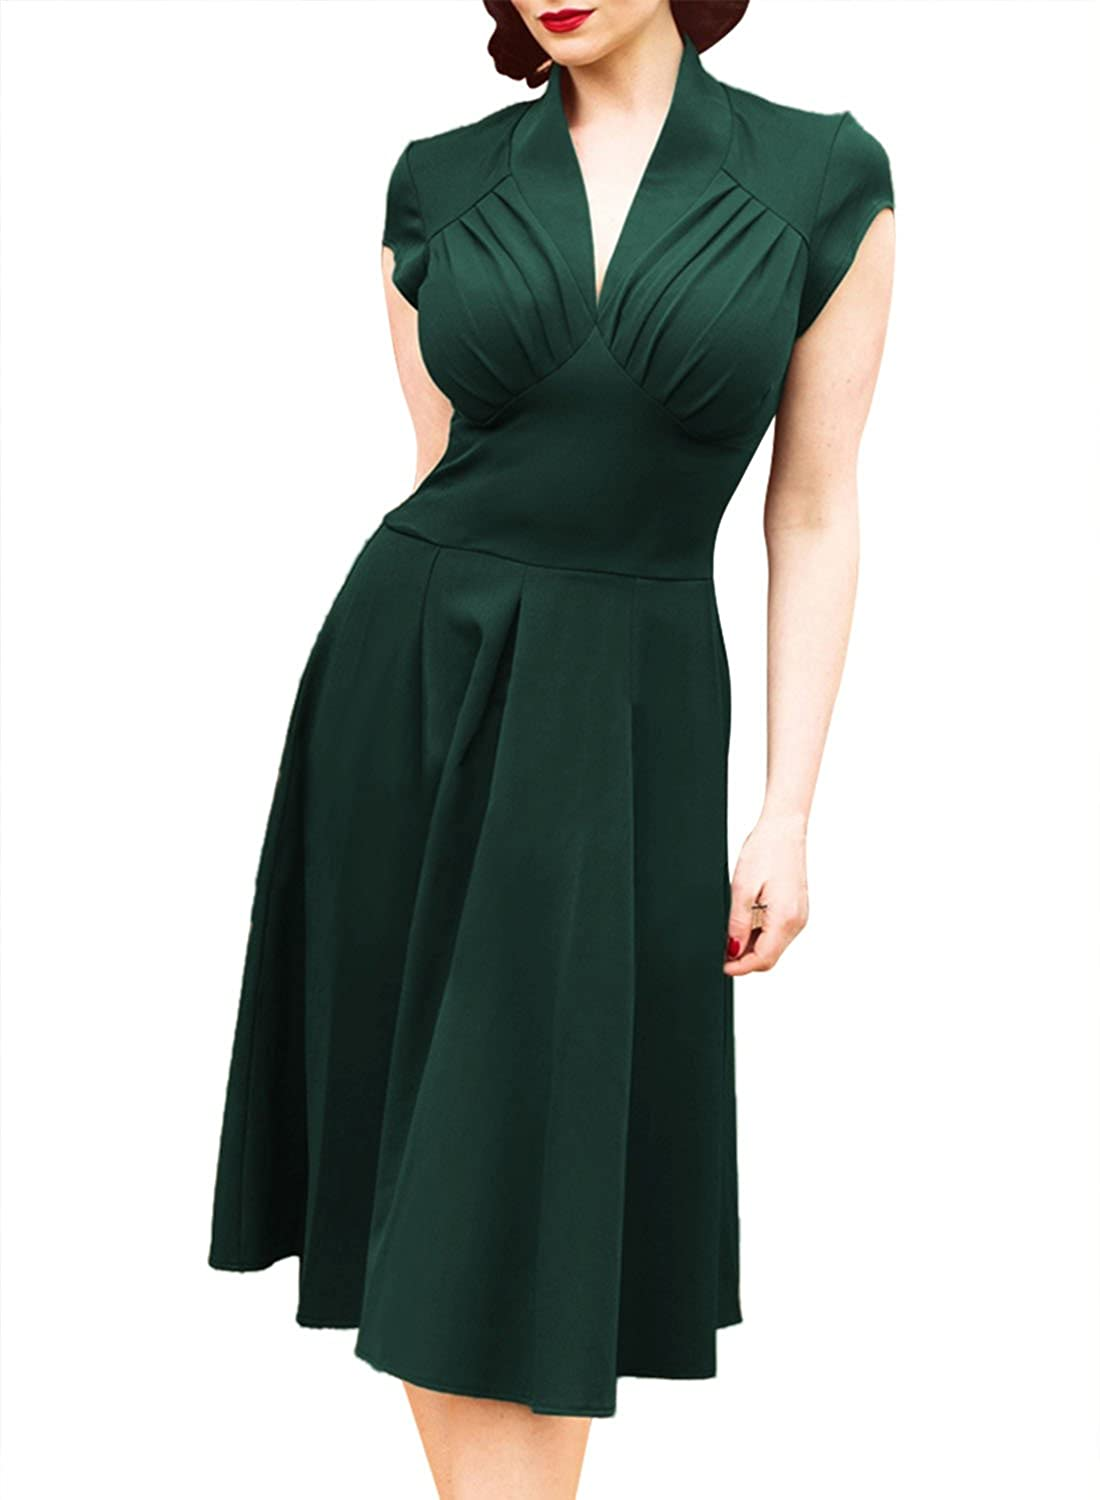 1940s Dresses and Clothing UK | 40s Shoes UK Sweetmeet Womens 1940s Vintage Rockabilly Ball Gown Flared Dress Swing Skaters �25.99 AT vintagedancer.com